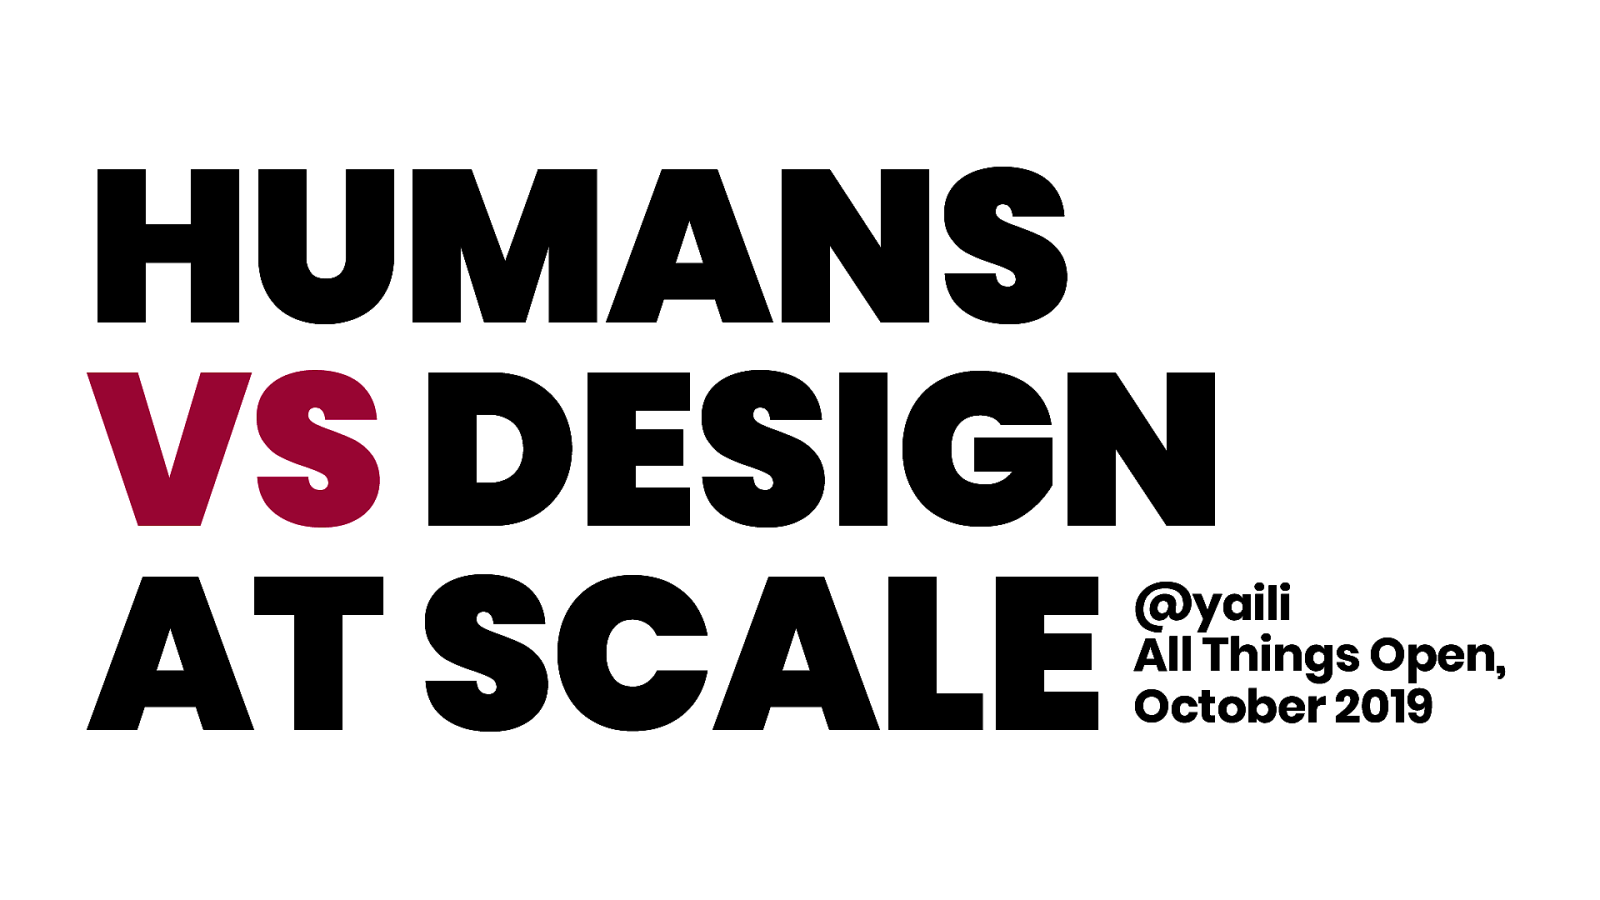 Humans vs Design at Scale